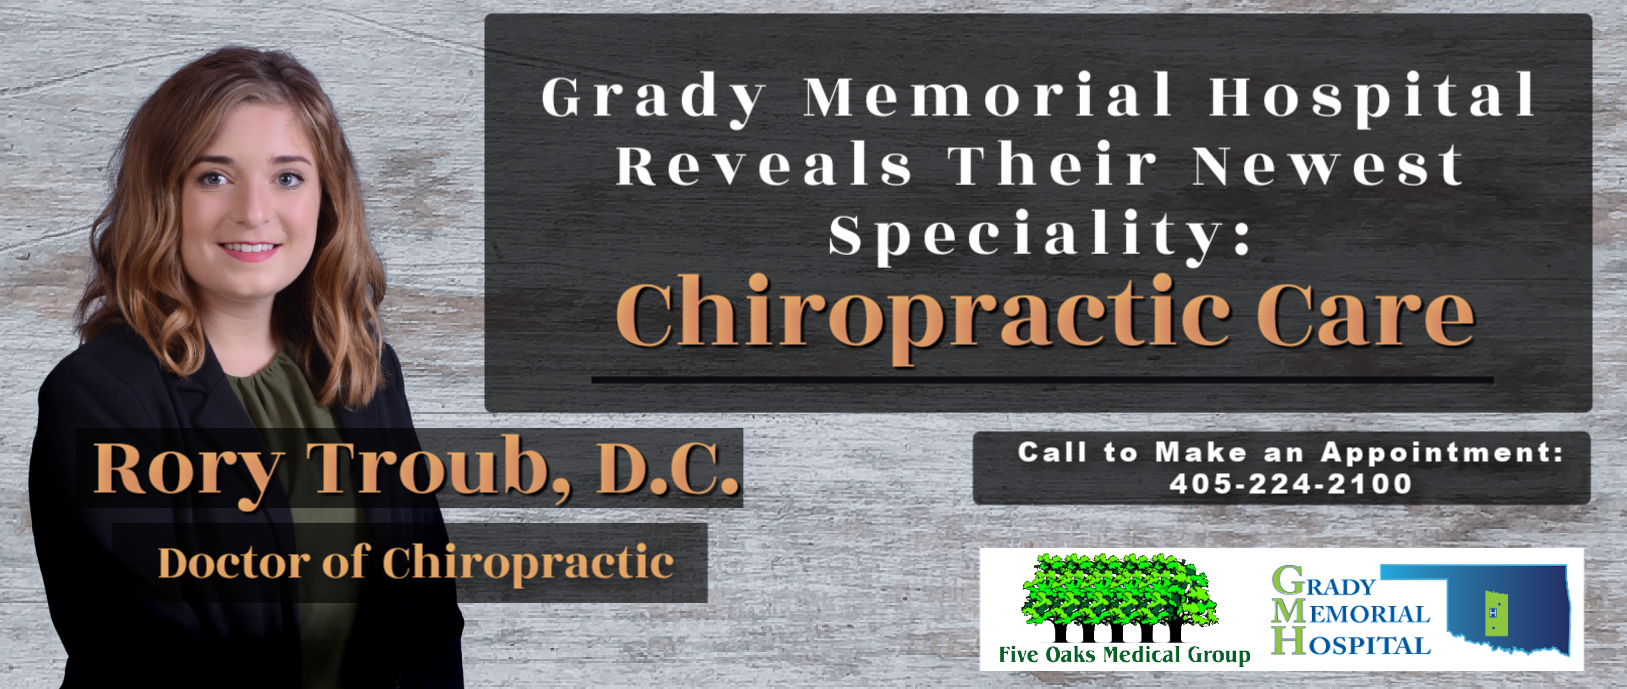 Banner picture of  Rory Troub, D.C. smiling. Banner says: Rory Troub, D.C. Doctor of Chiropractic  Grady Memorial Hospital Reveals Their Newest Speciality: Chiropractic Care  Call to Make an Appointment: 4050224-1000  (five graphic's oak trees) Five Oaks Medical Group  GRADY MEMORIAL HOSPITAL (Outline of Arkansas State)